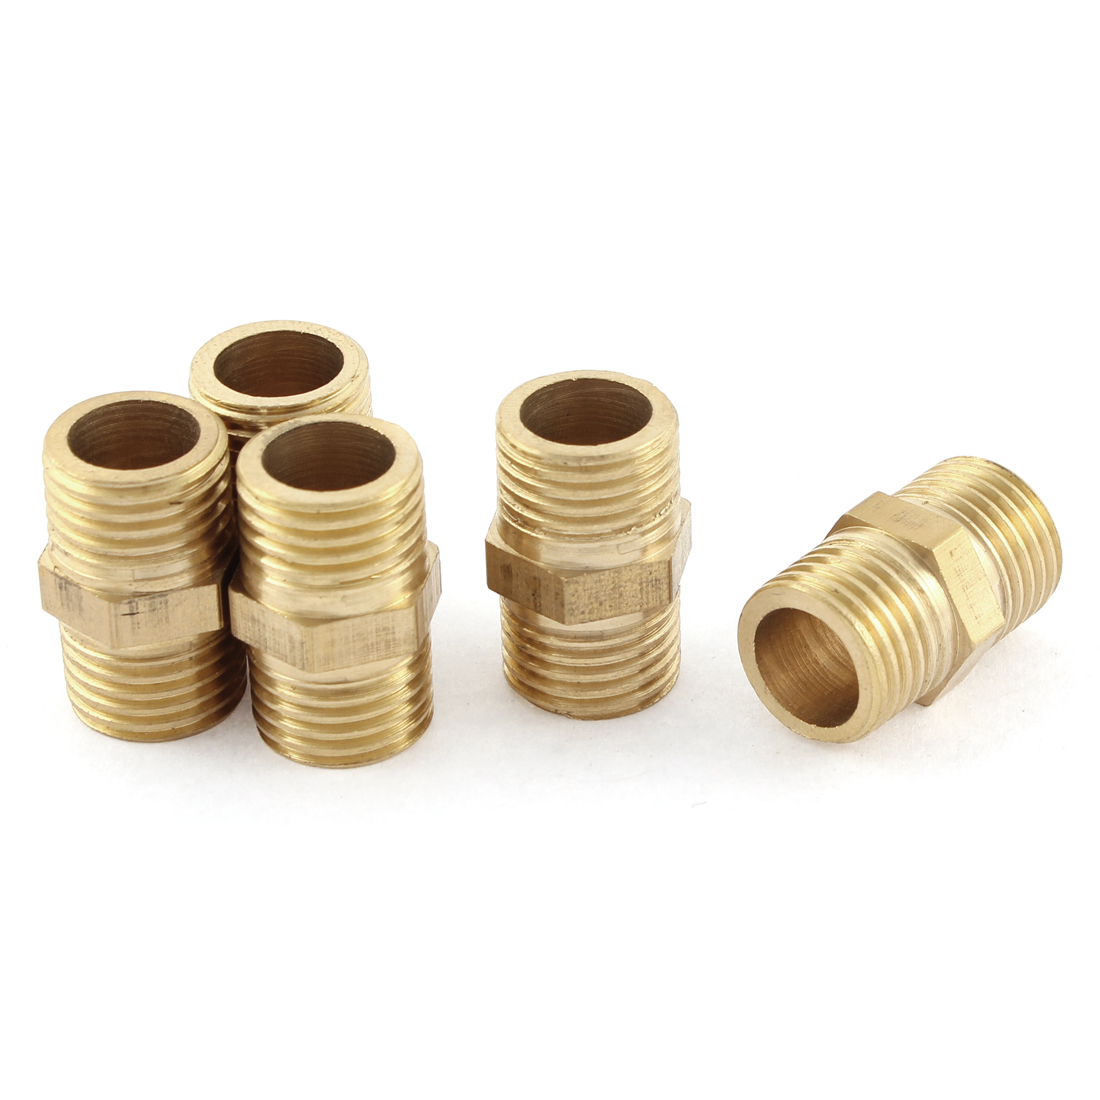 5 Pcs 1/4 BSP to 1/4 BSP Male Thread Brass Pipe Hex Nipple Fitting Quick Adapter